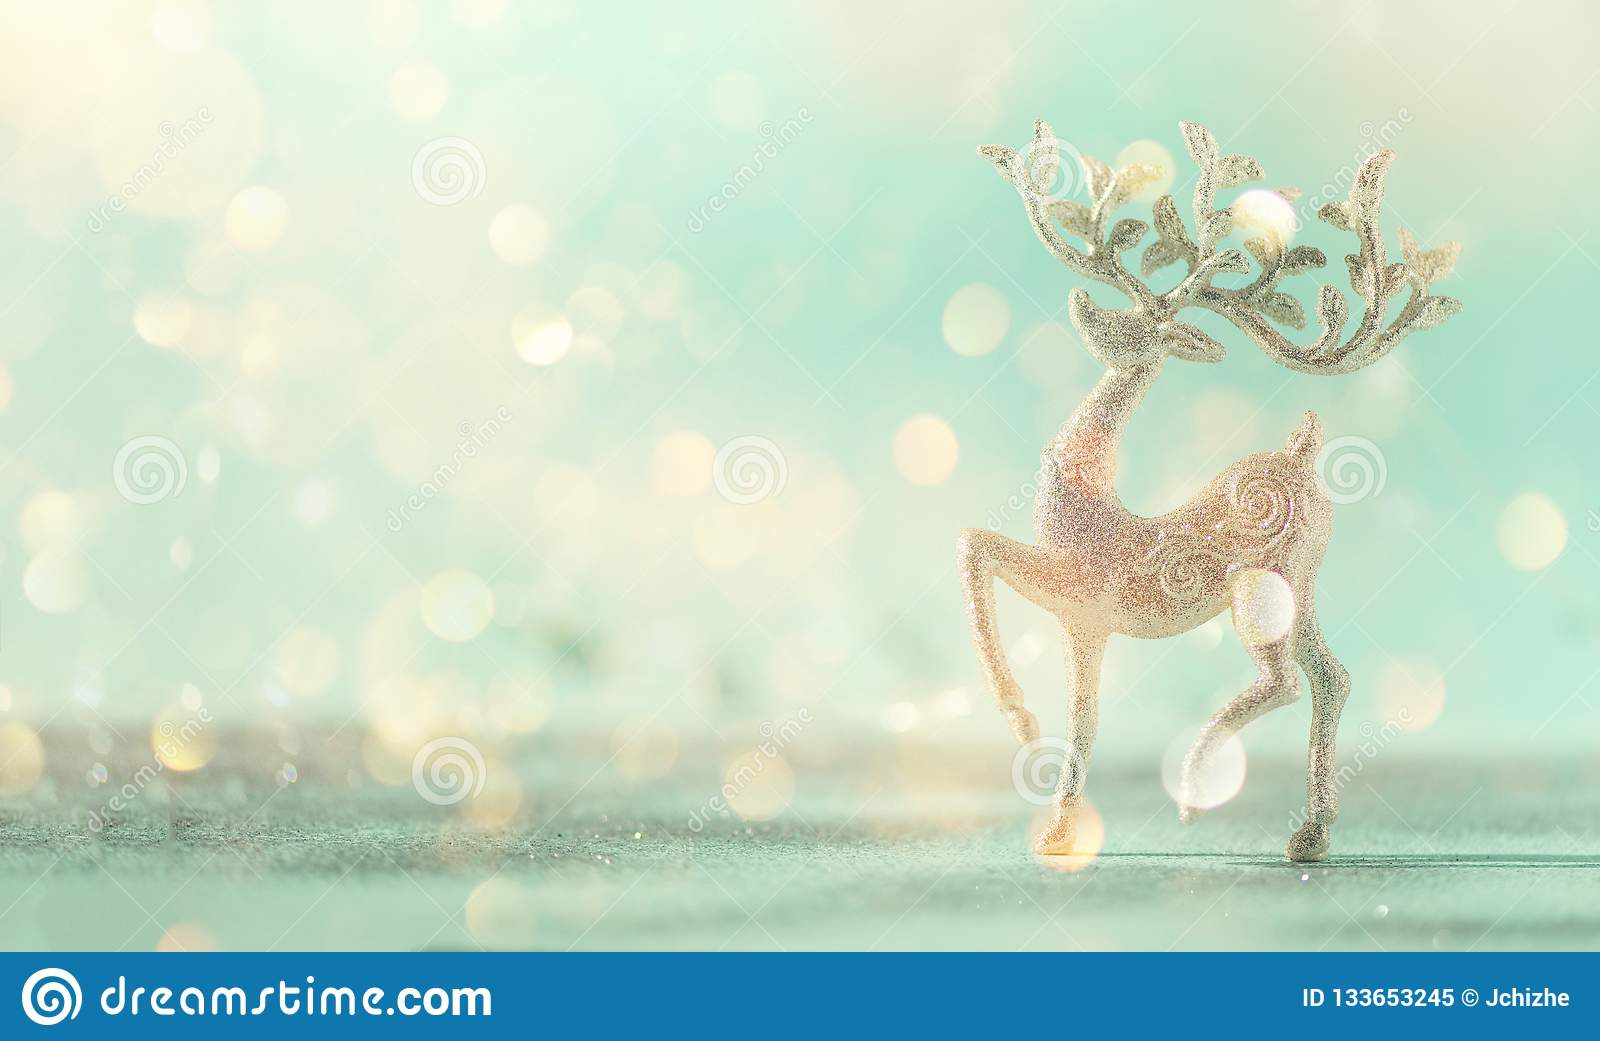 Silver glitter Christmas deer on blue background with lights bokeh, copy space. Greeting card for new year party. Festive holiday